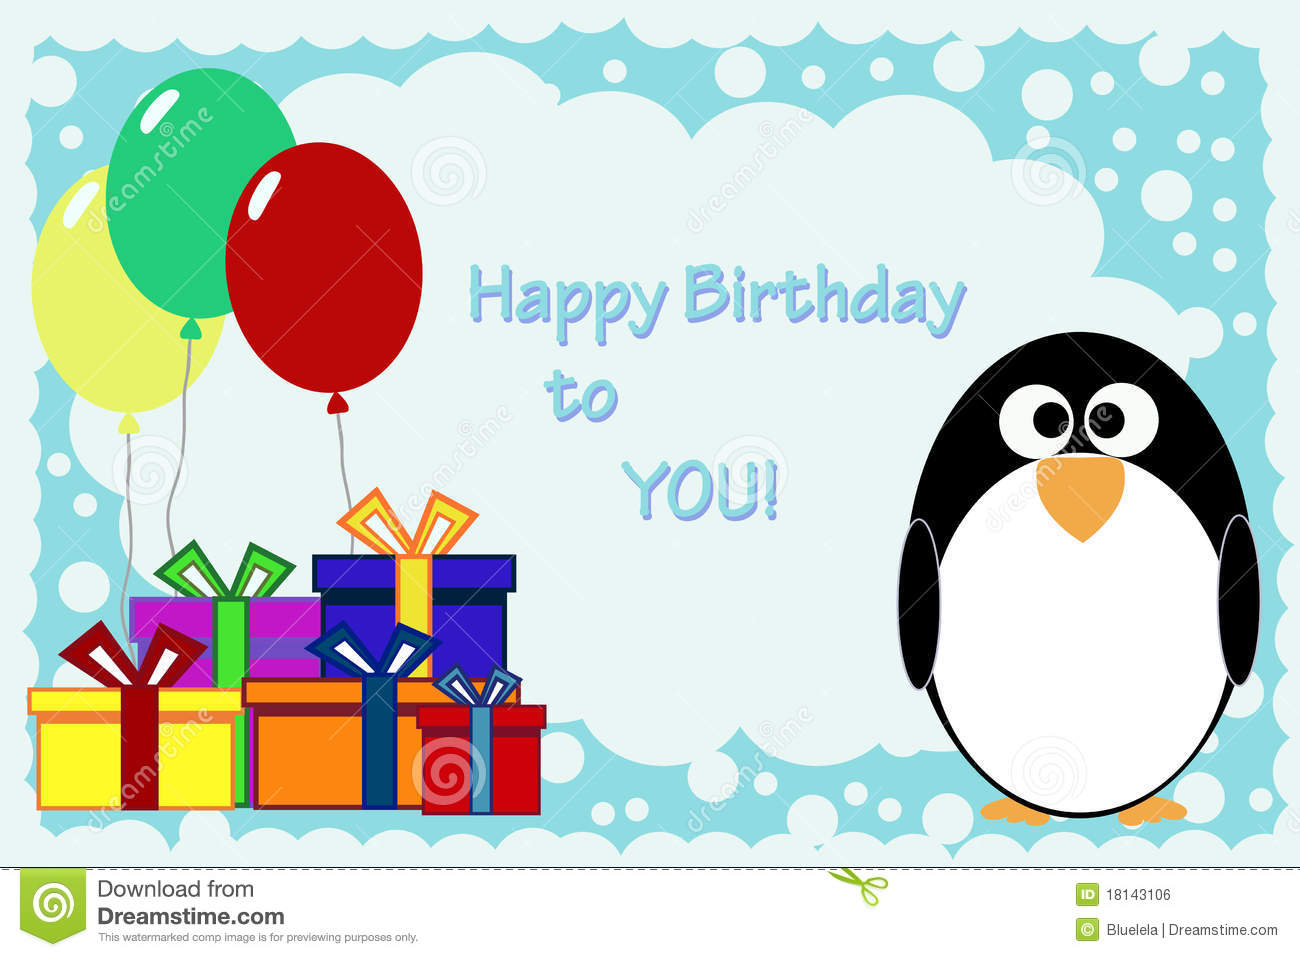 Penguin Birthday Card Royalty Free Stock Image - Image: 18143106